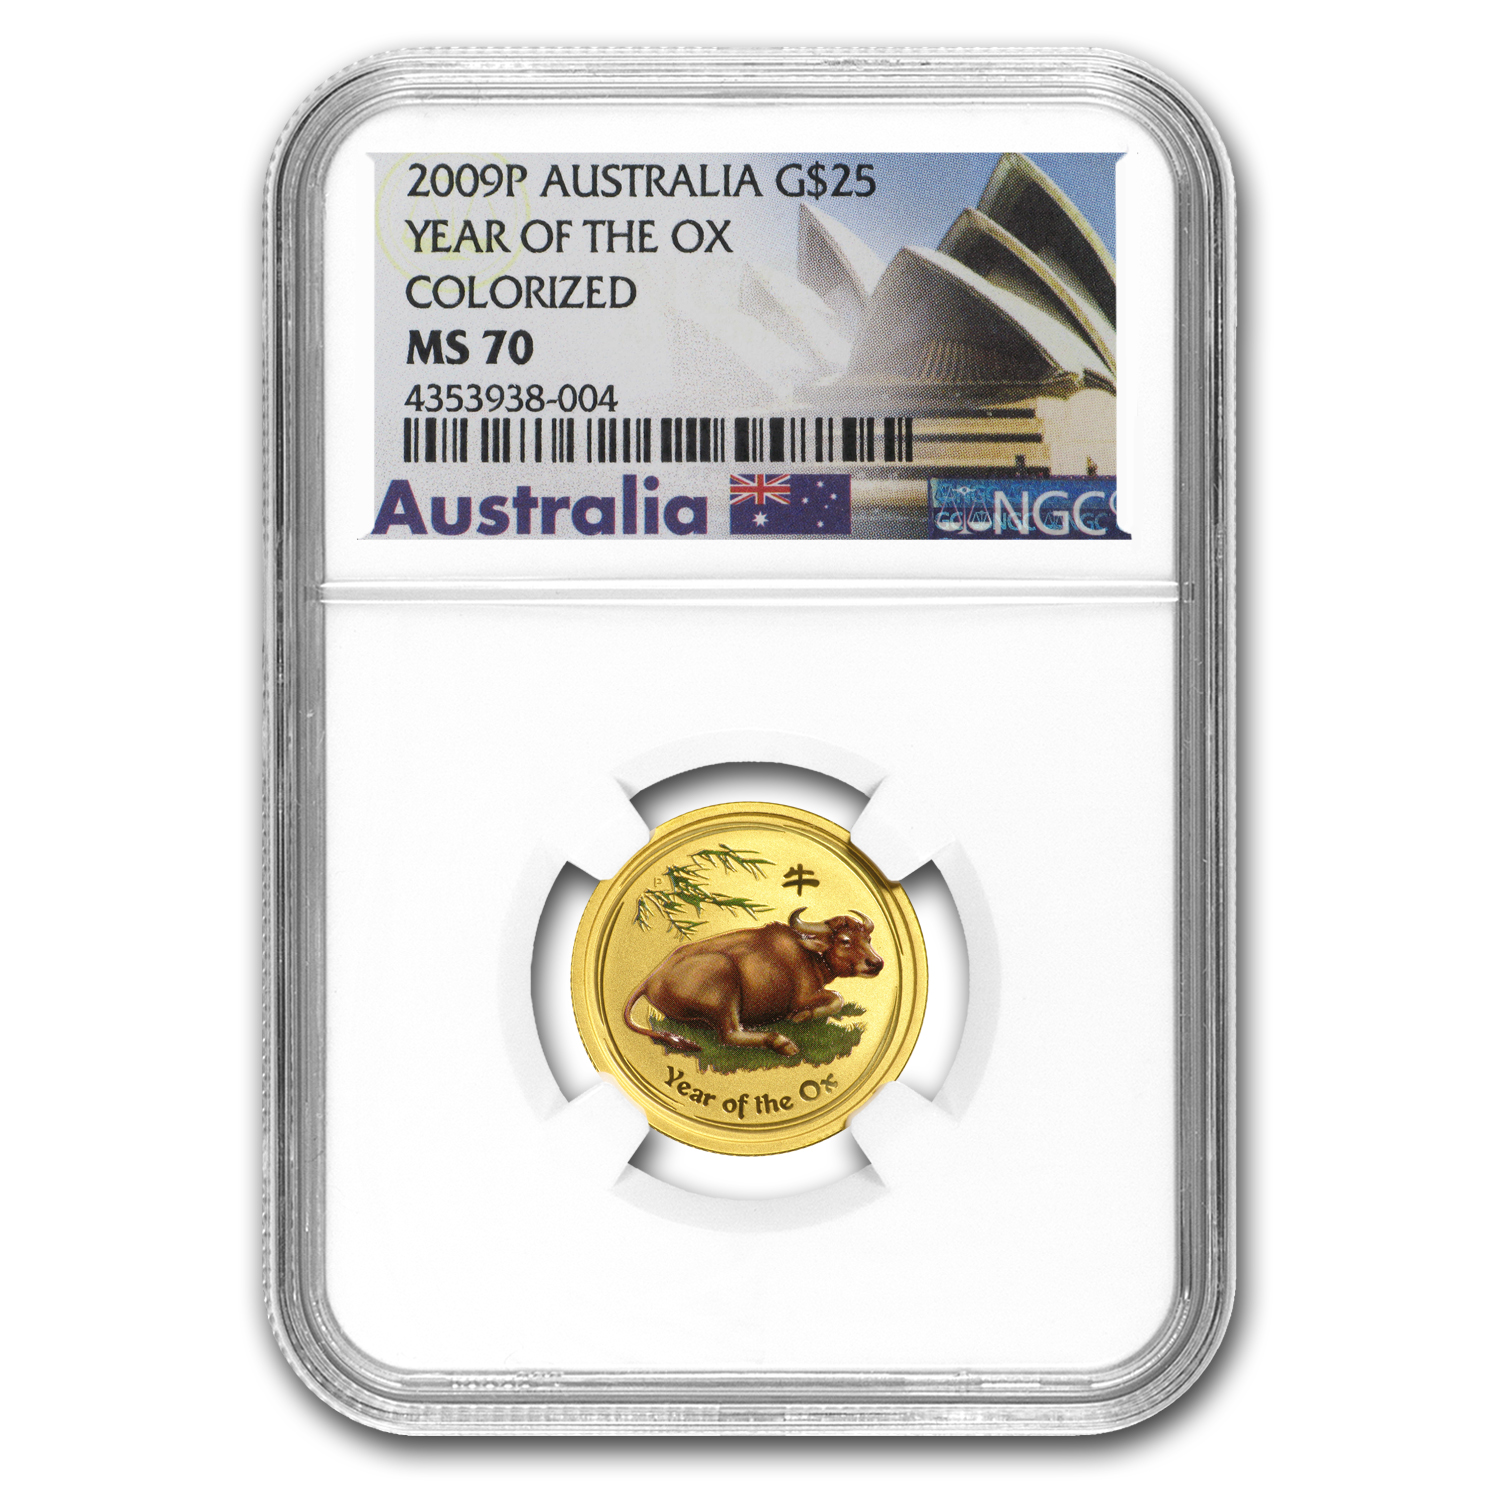 2009 Australia 1/4 oz Gold Lunar Ox MS-70 NGC (SII, Colorized)